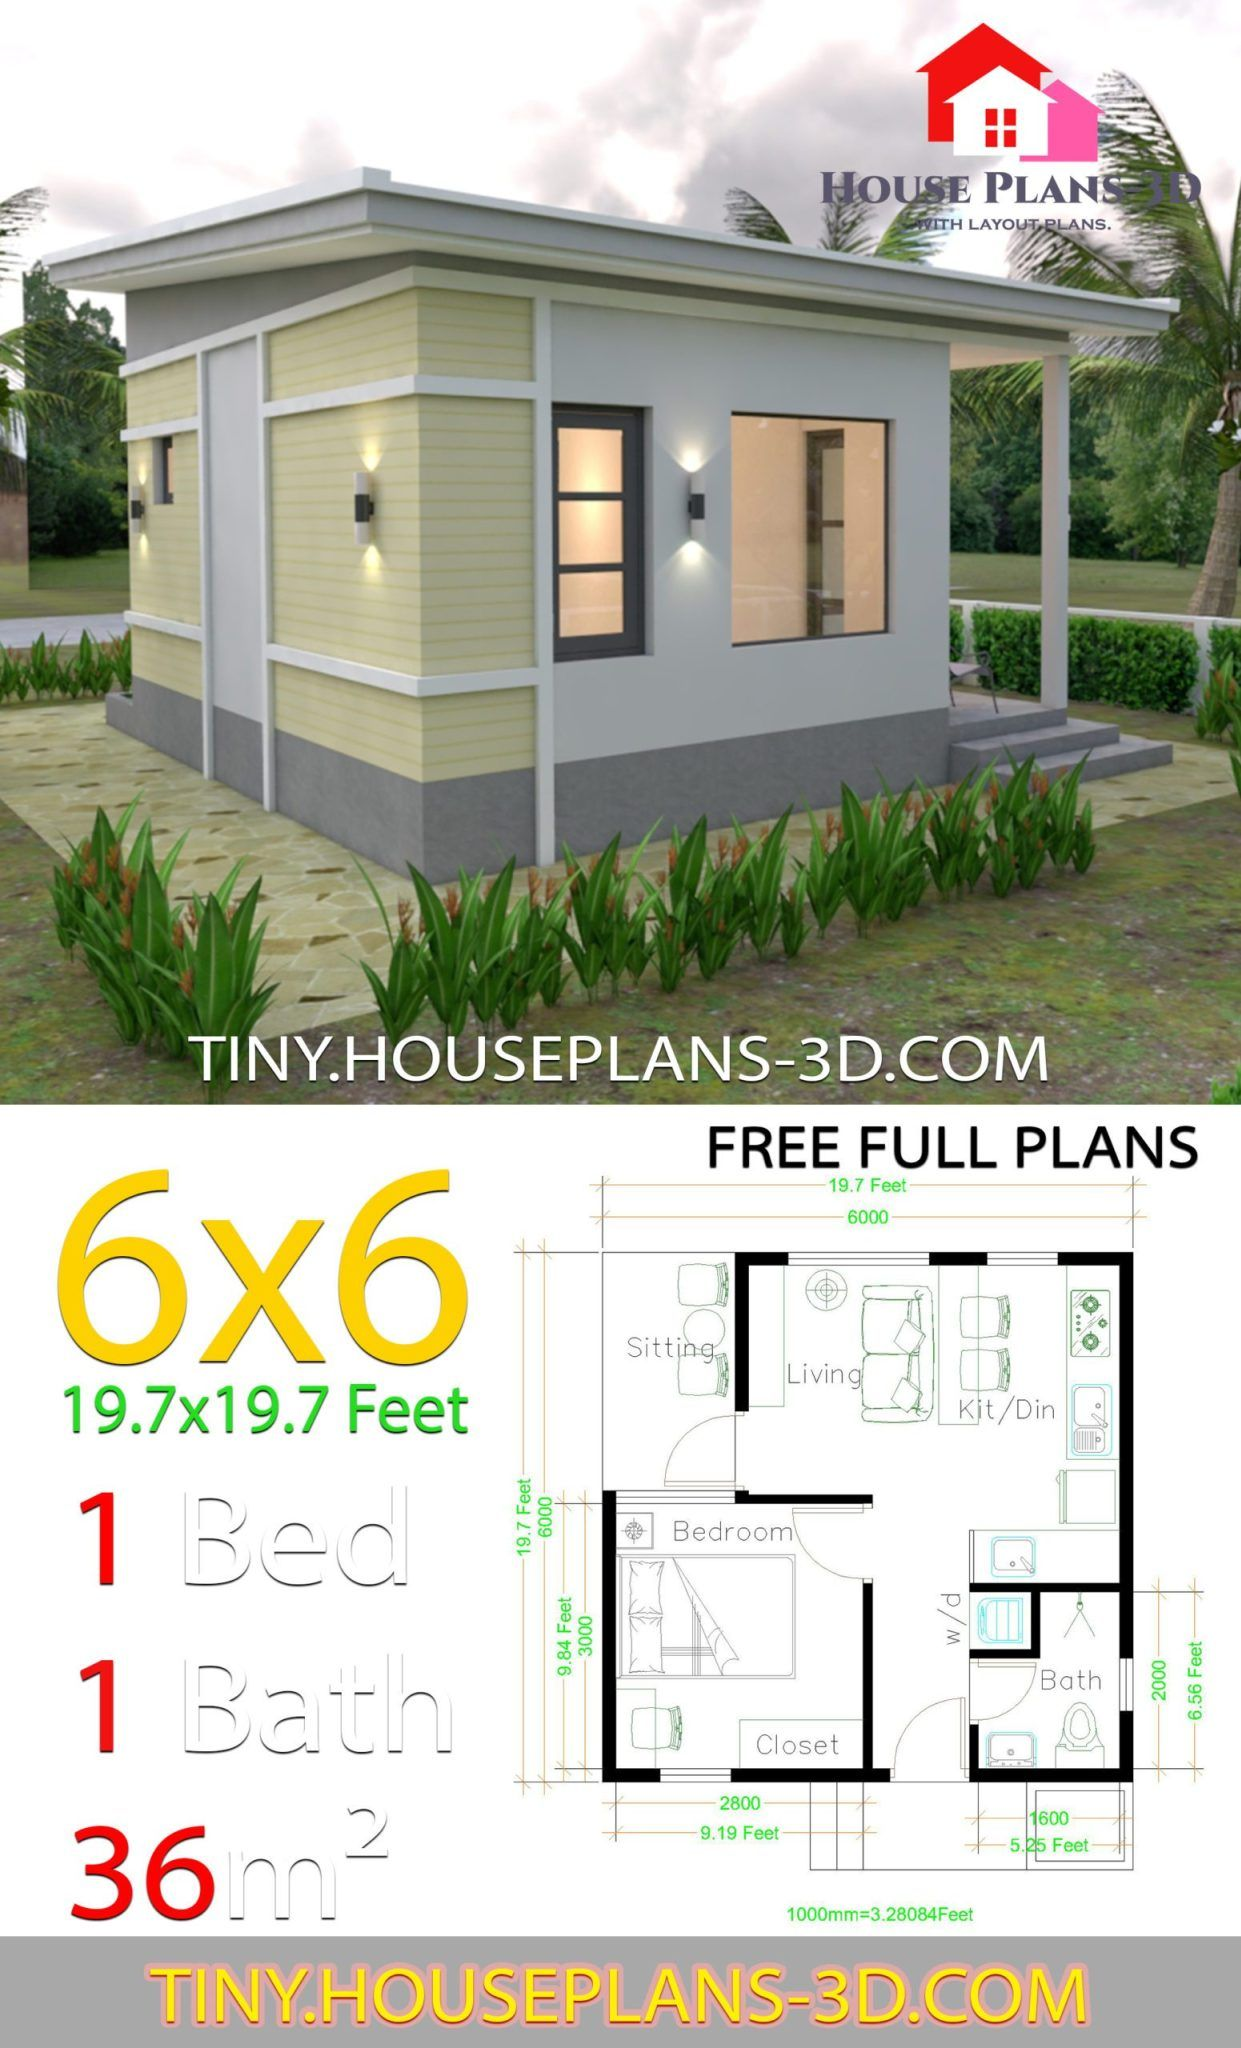 One Bedroom House Plans 6x6 With Shed Roof In 2020 One Bedroom House Small House Design Plans One Bedroom House Plans